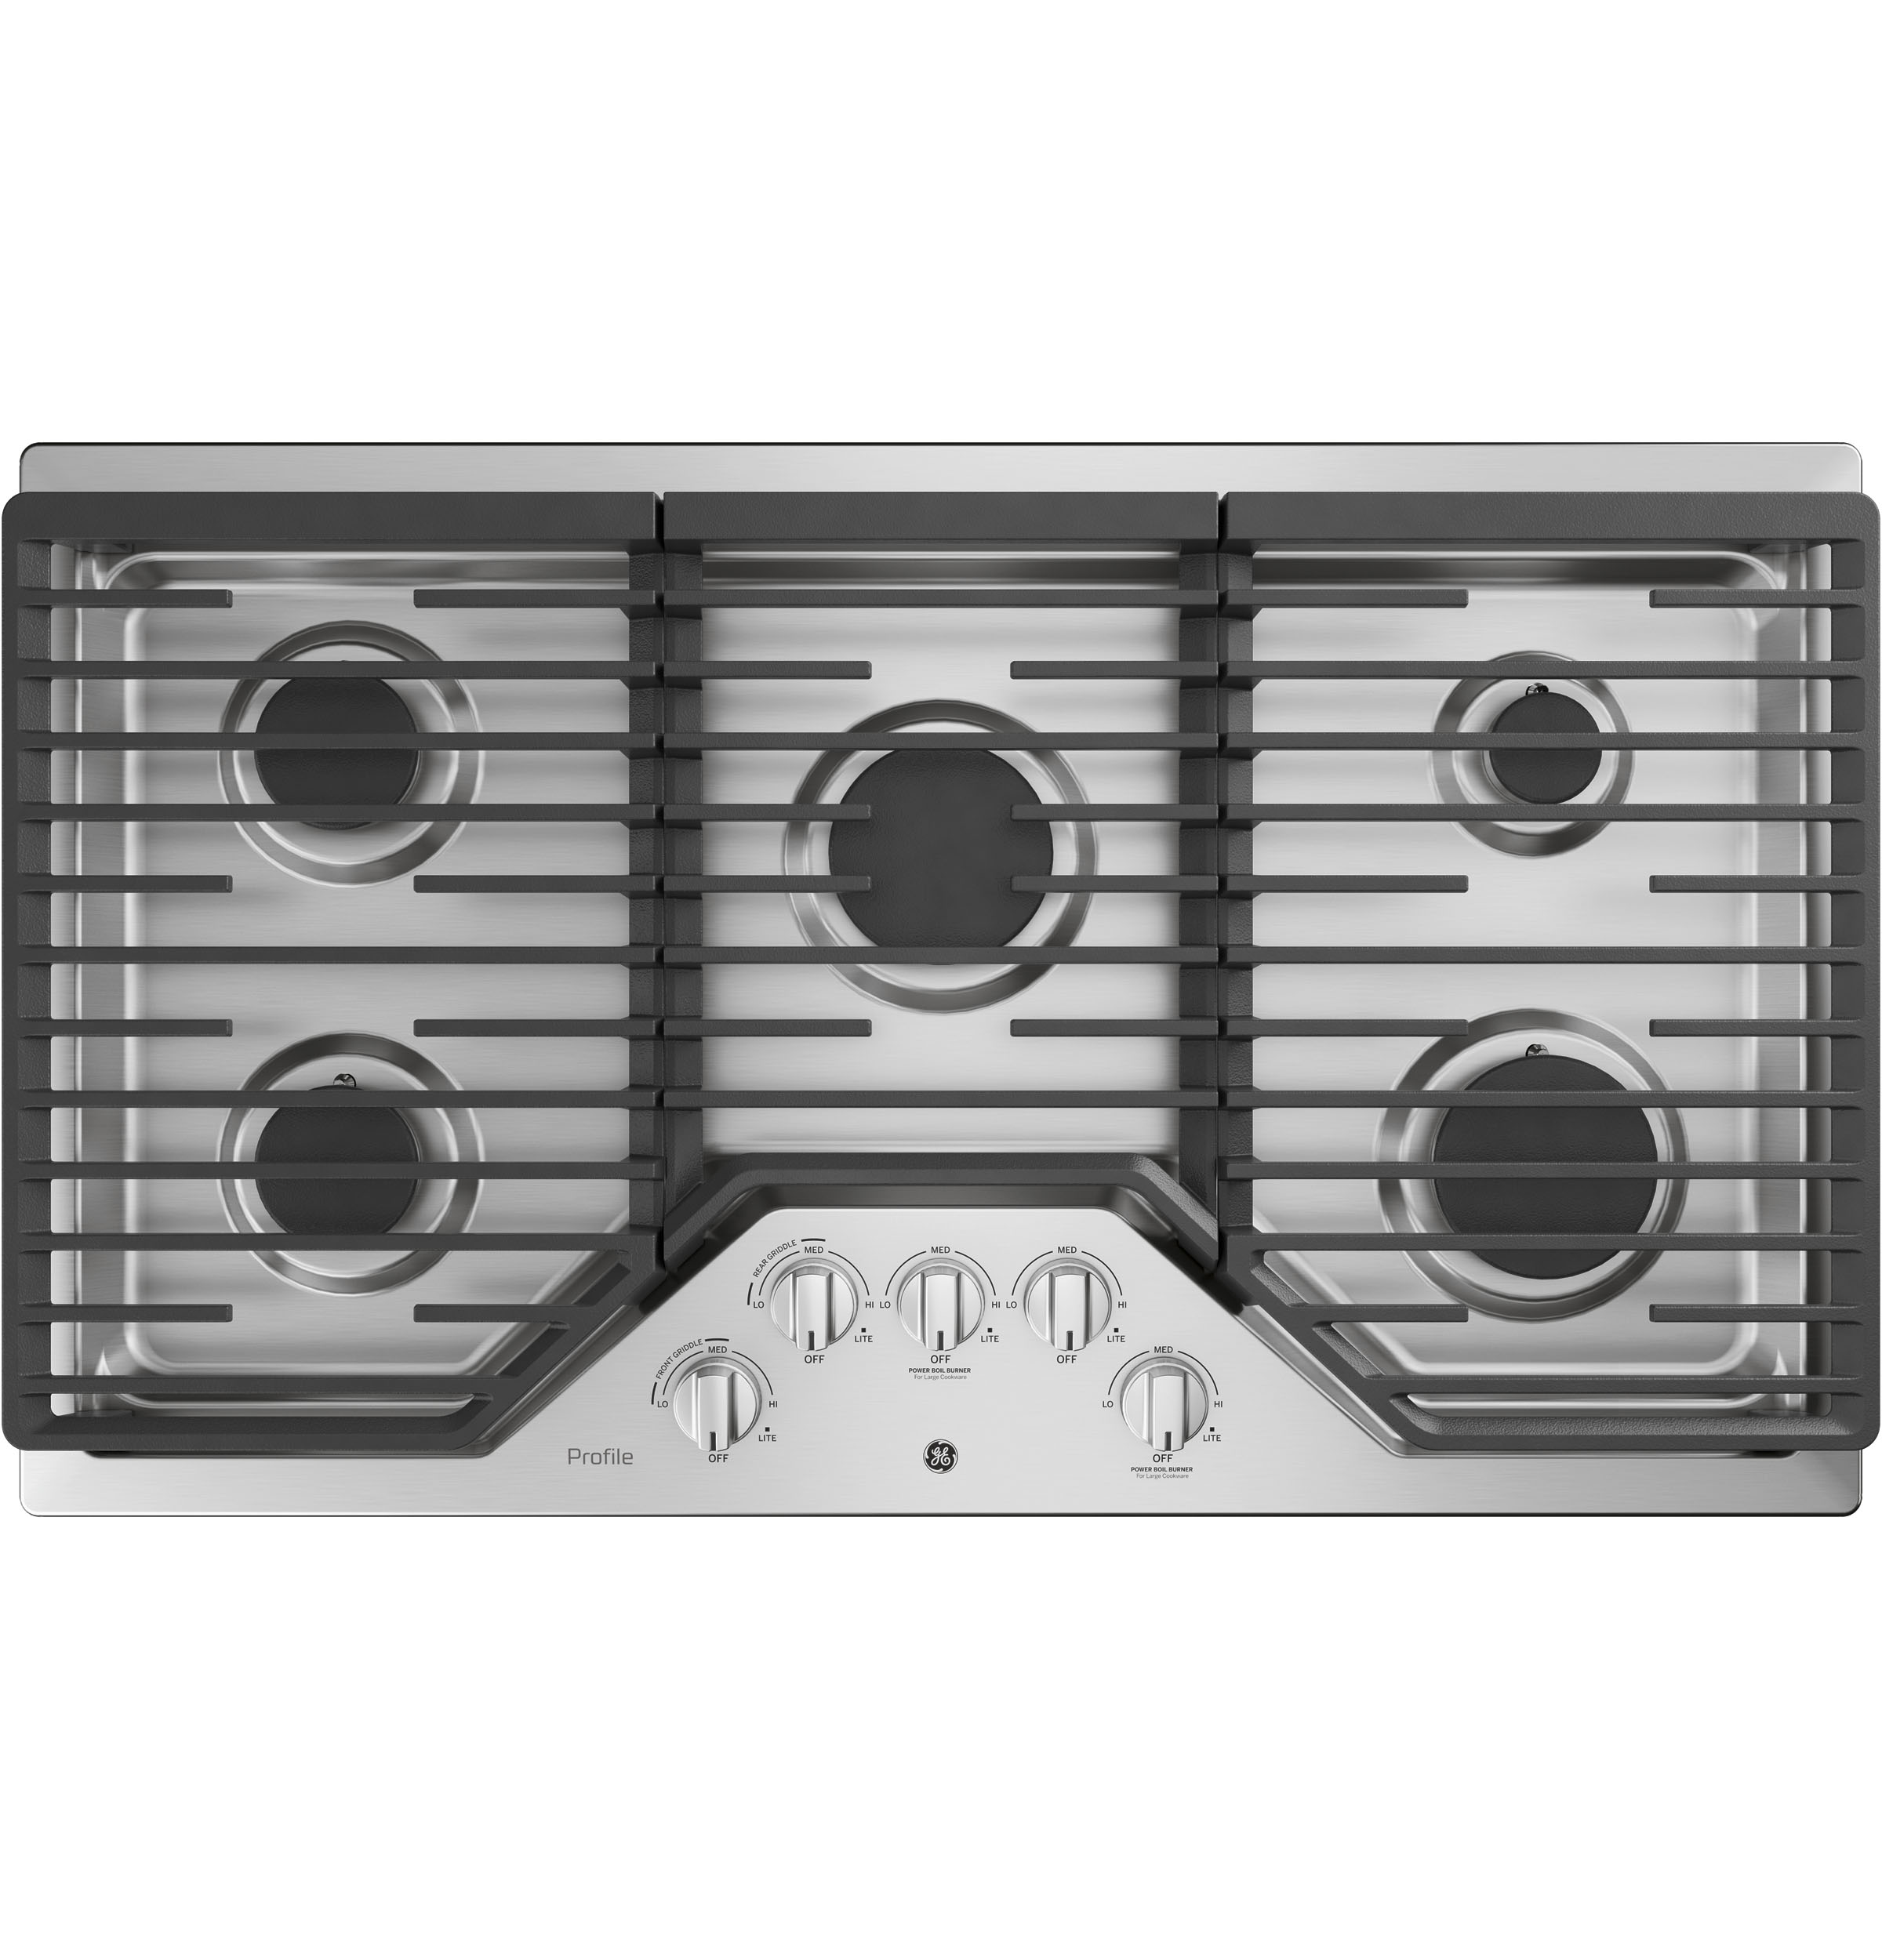 Ge Profile Series 36 Built In Gas Cooktop Pgp7036slss Cook Top And Light Fan Wiring Diagram Product Image